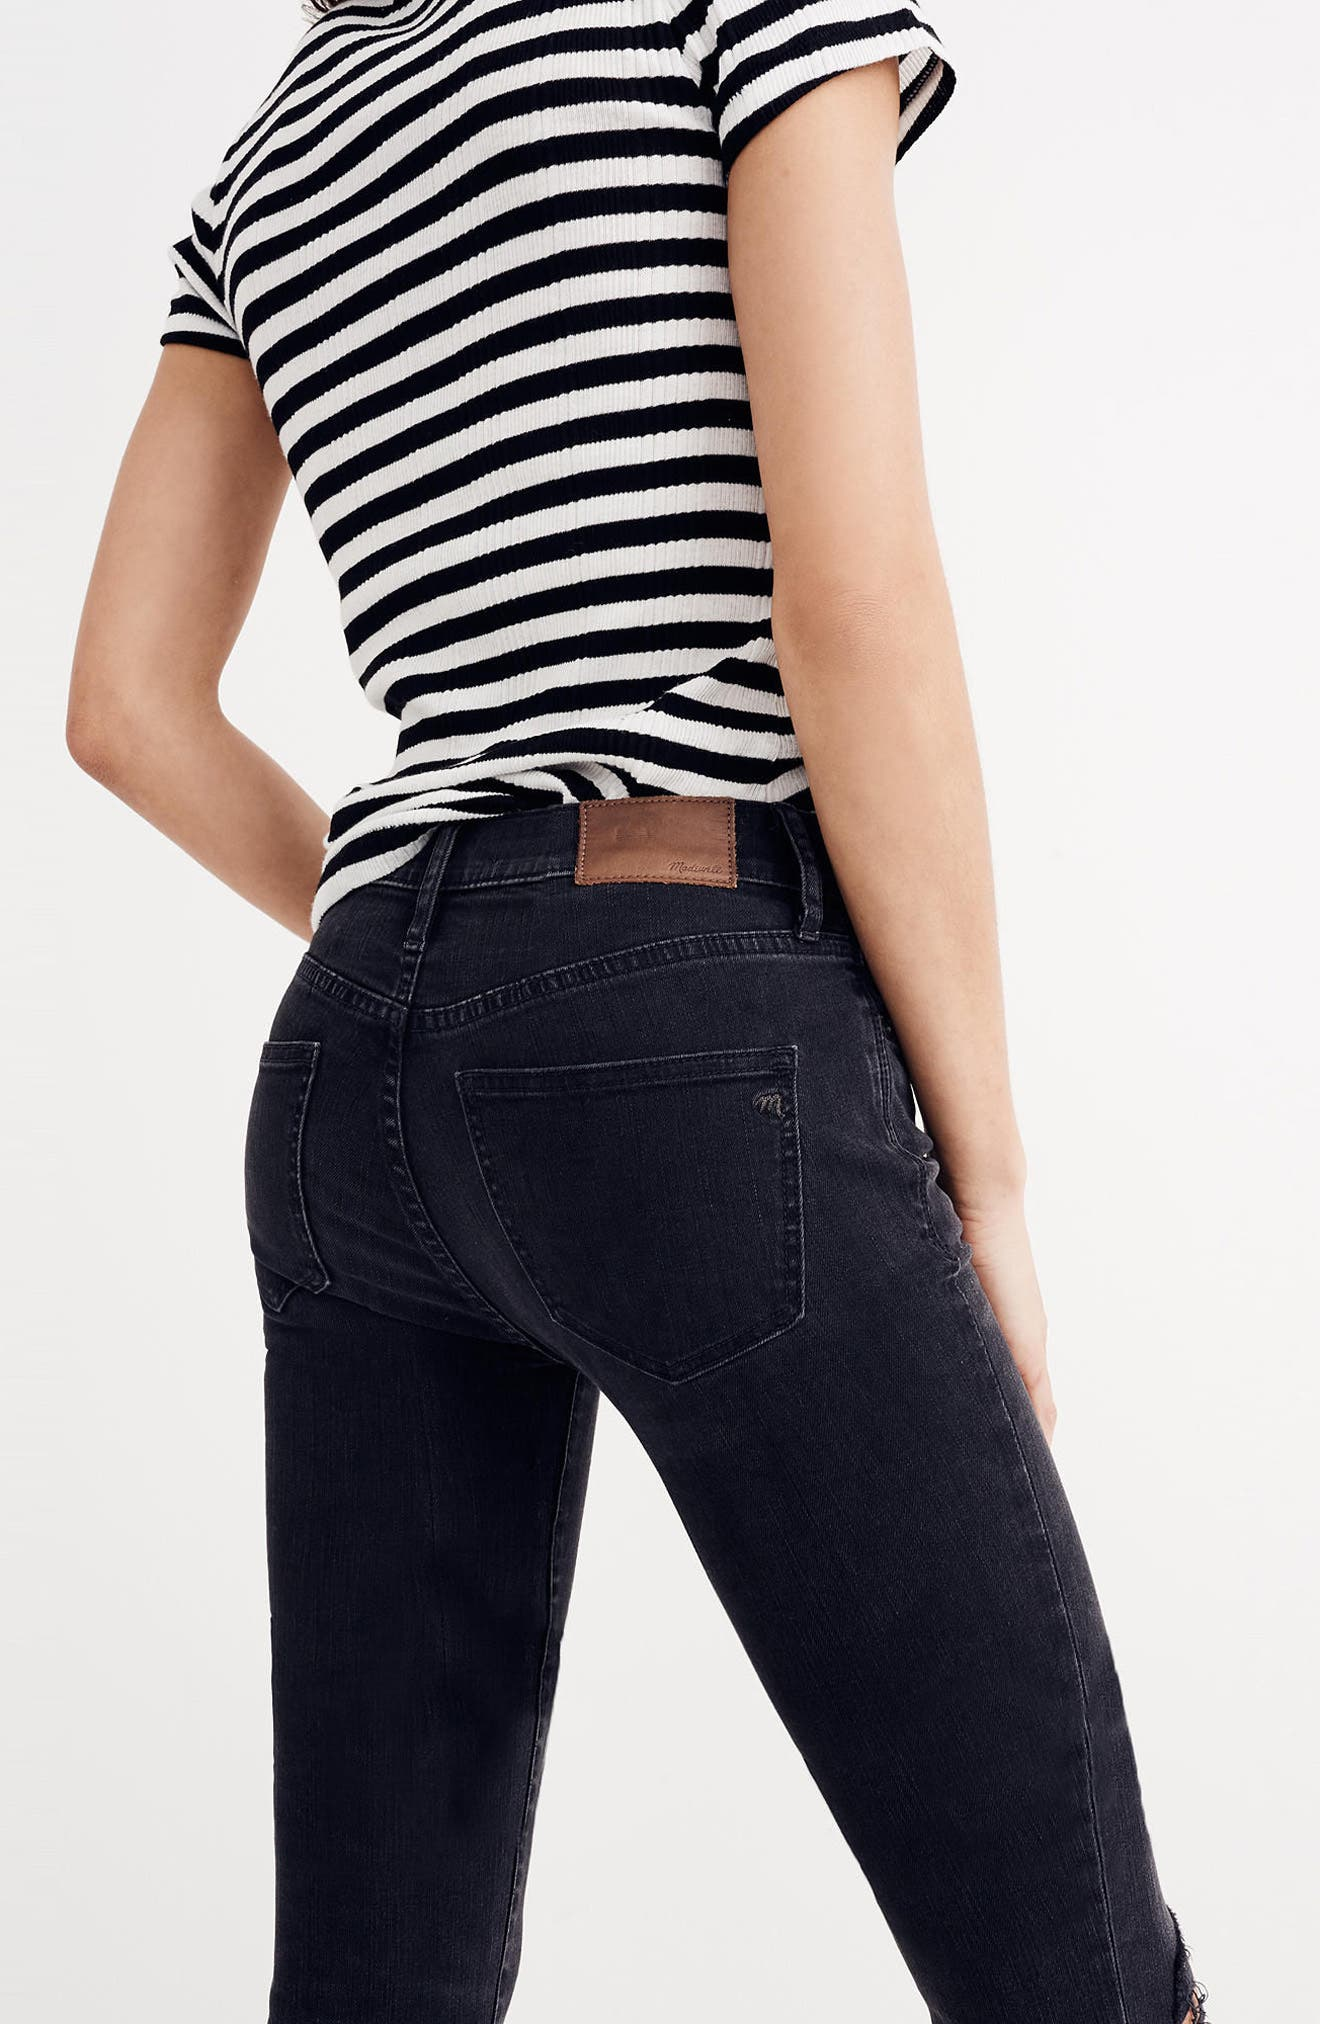 9-Inch High Waist Skinny Jeans,                             Alternate thumbnail 3, color,                             009